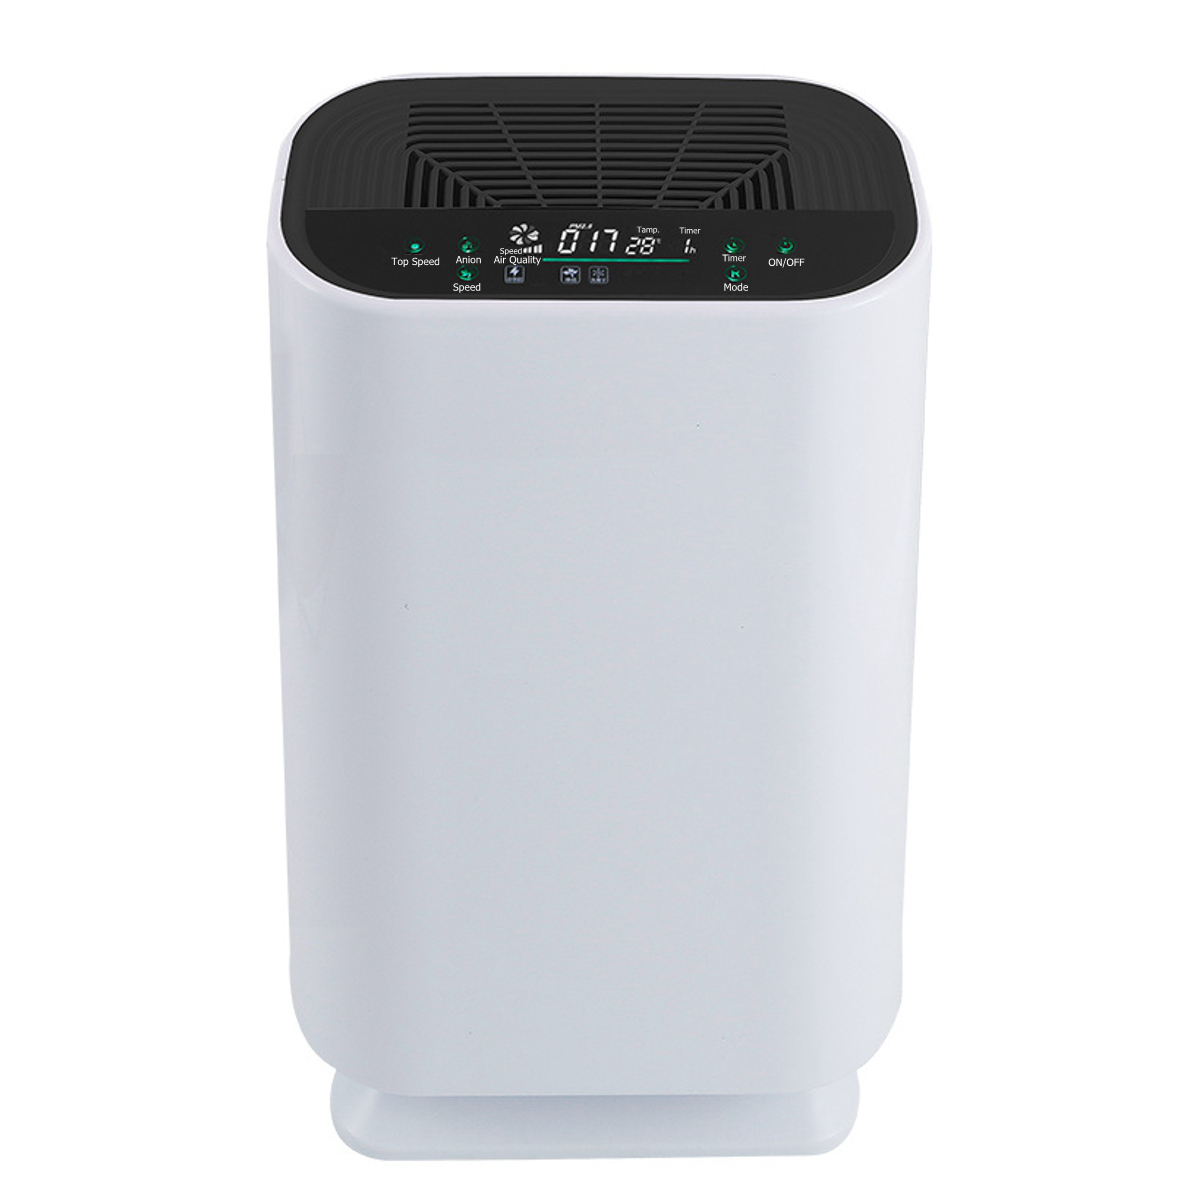 Air Purifier Ioniser Quiet Mode Hepa with Dual Filtration Filter Ionizer HEPA